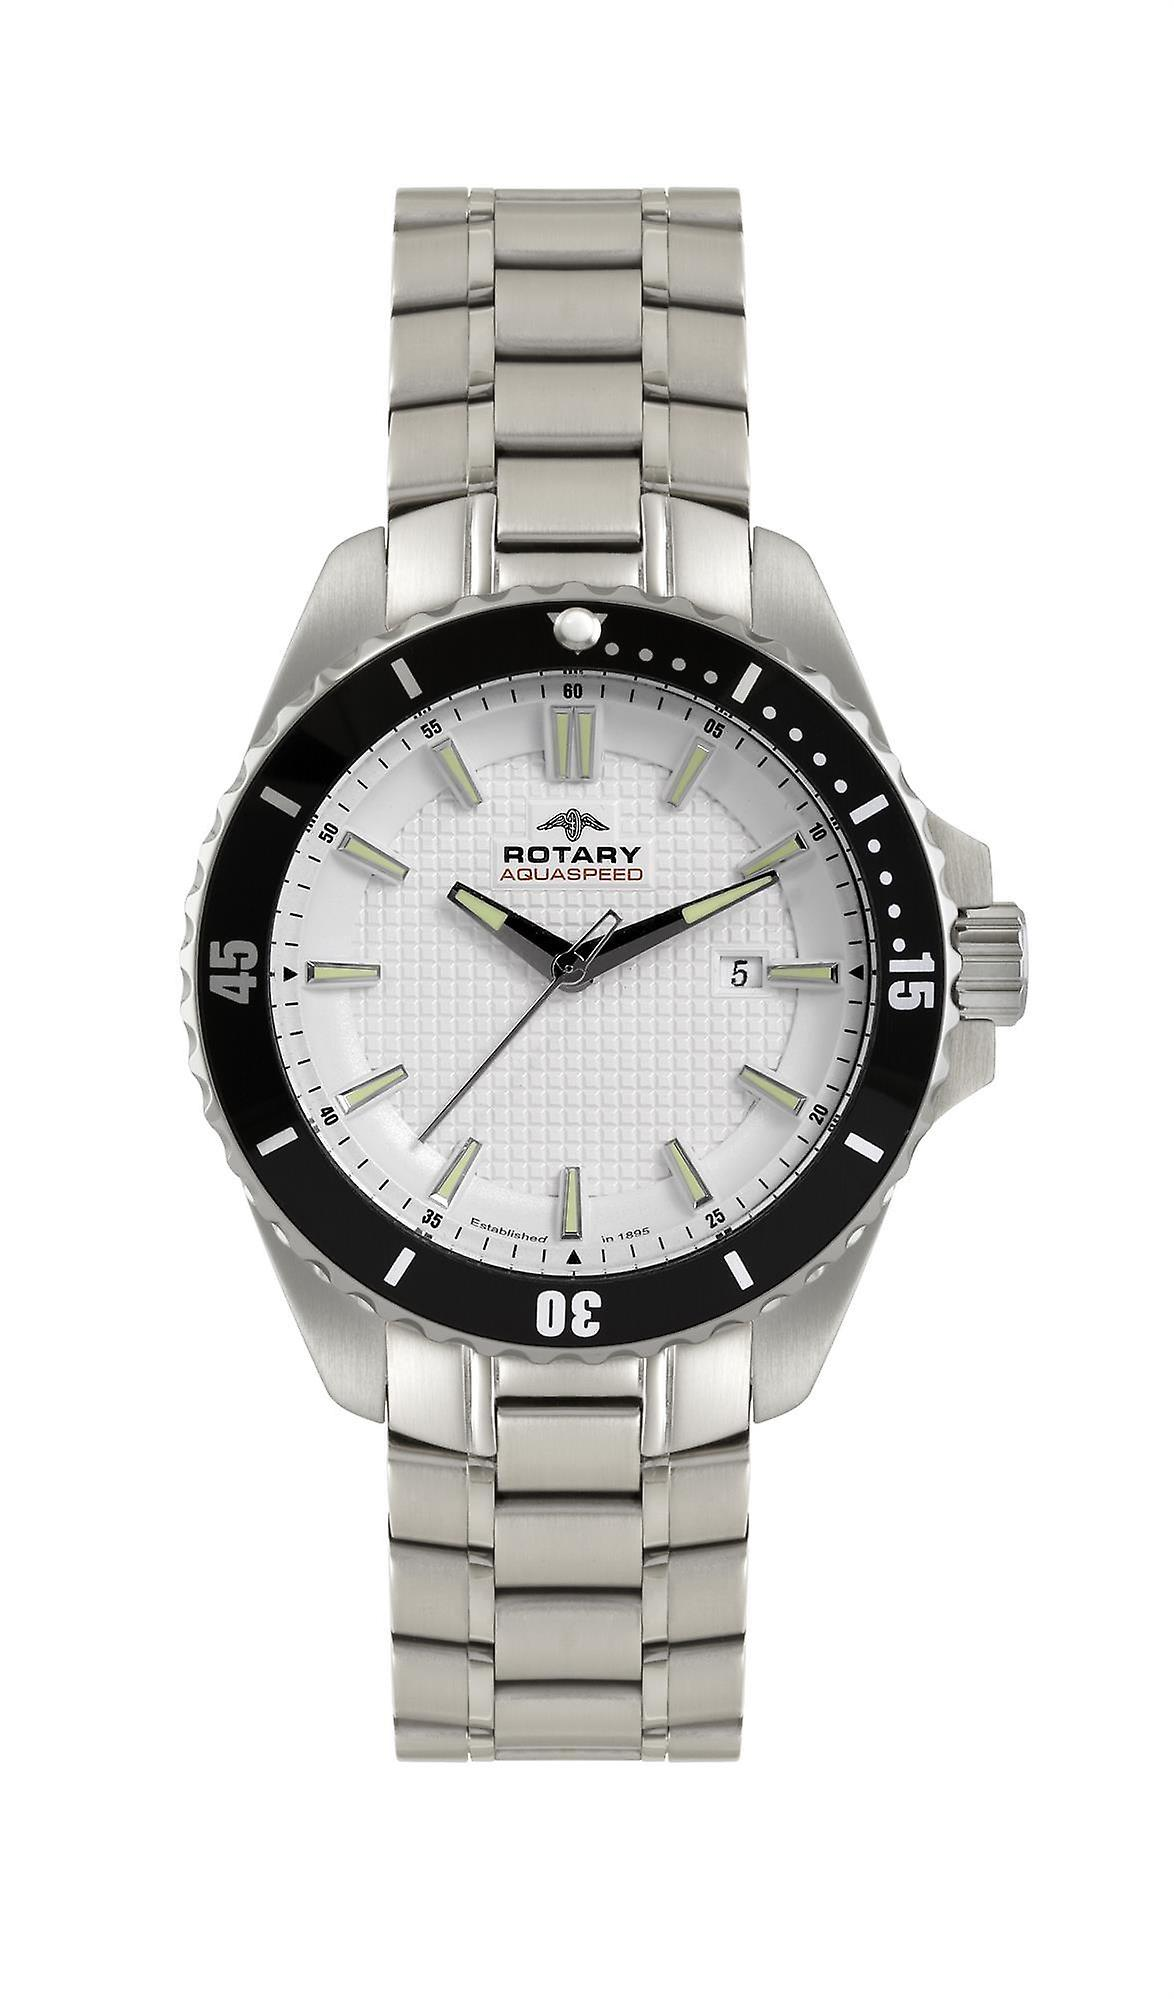 Rotary Aquaspeed Stainless Steel Men's Watch